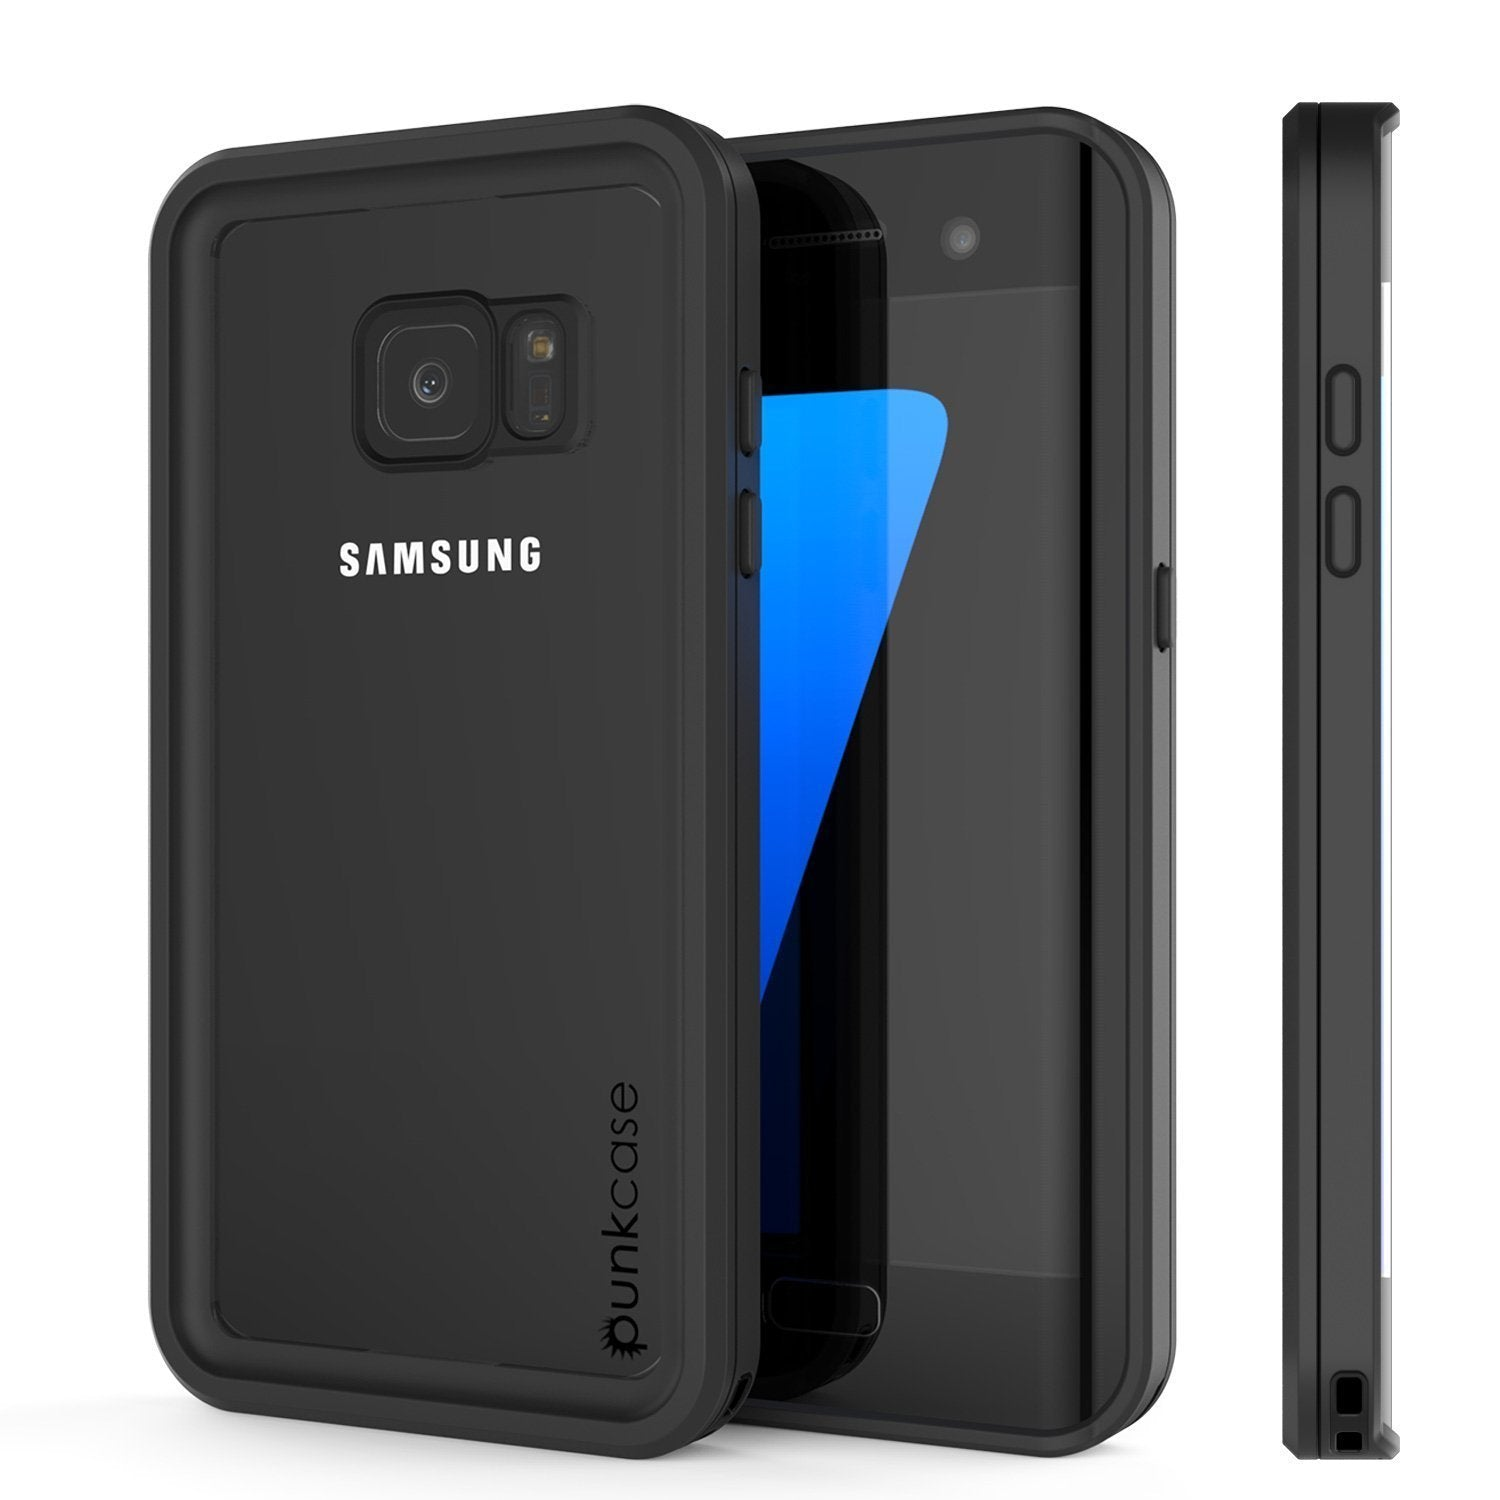 Galaxy S7 Edge Waterproof Case, Punkcase [Extreme Series] [Slim Fit] Armor Cover W/ Built In Screen Protector [BLACK]